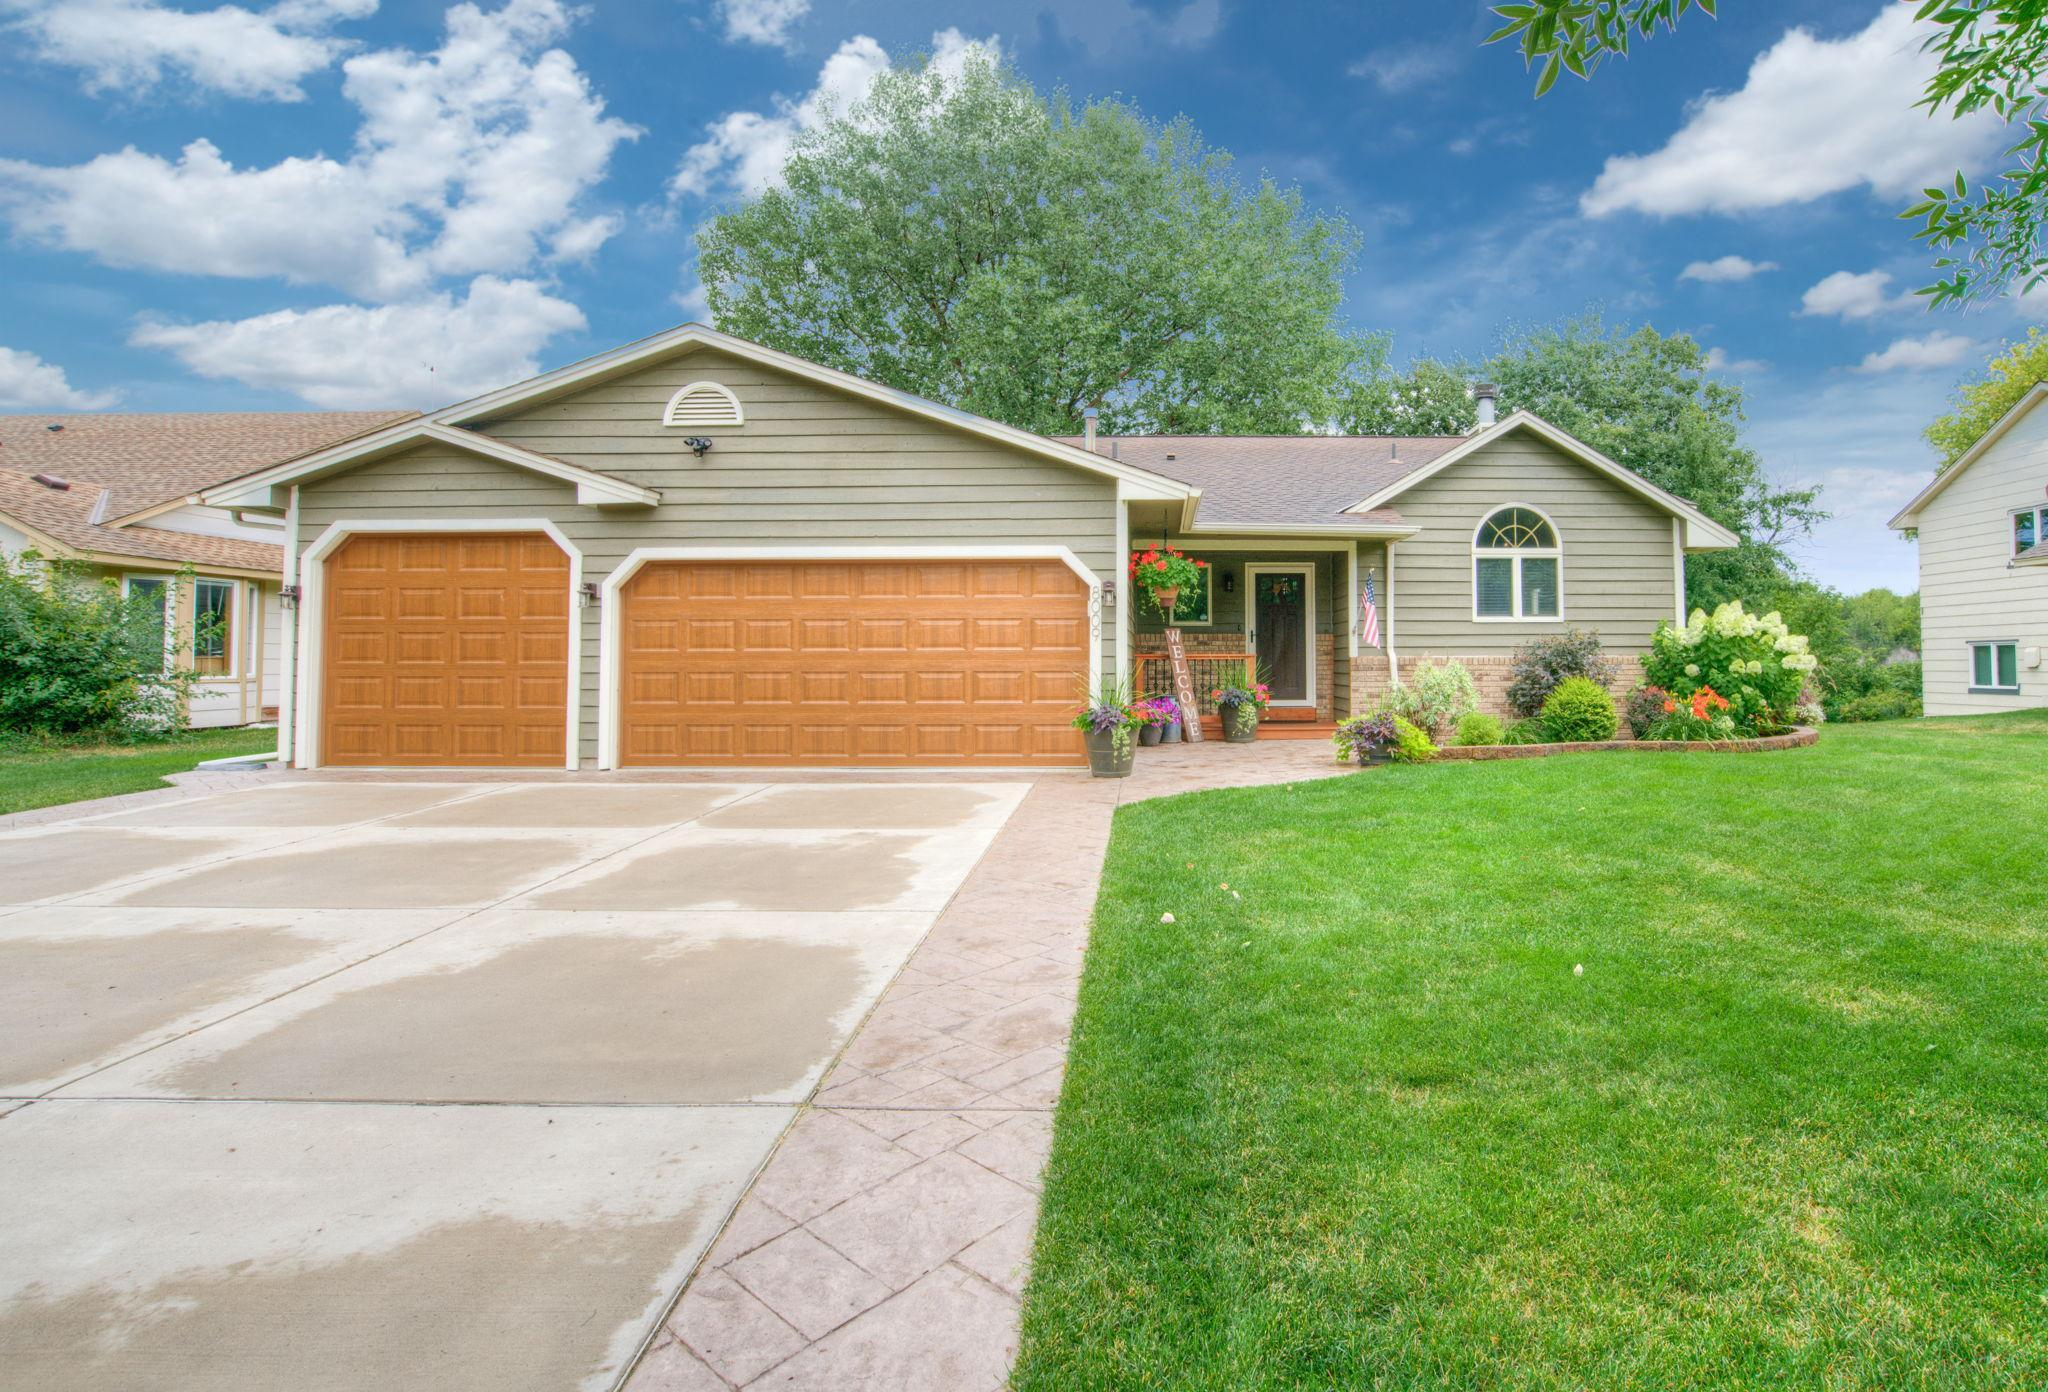 8009 Garfield Street NE Property Photo - Spring Lake Park, MN real estate listing